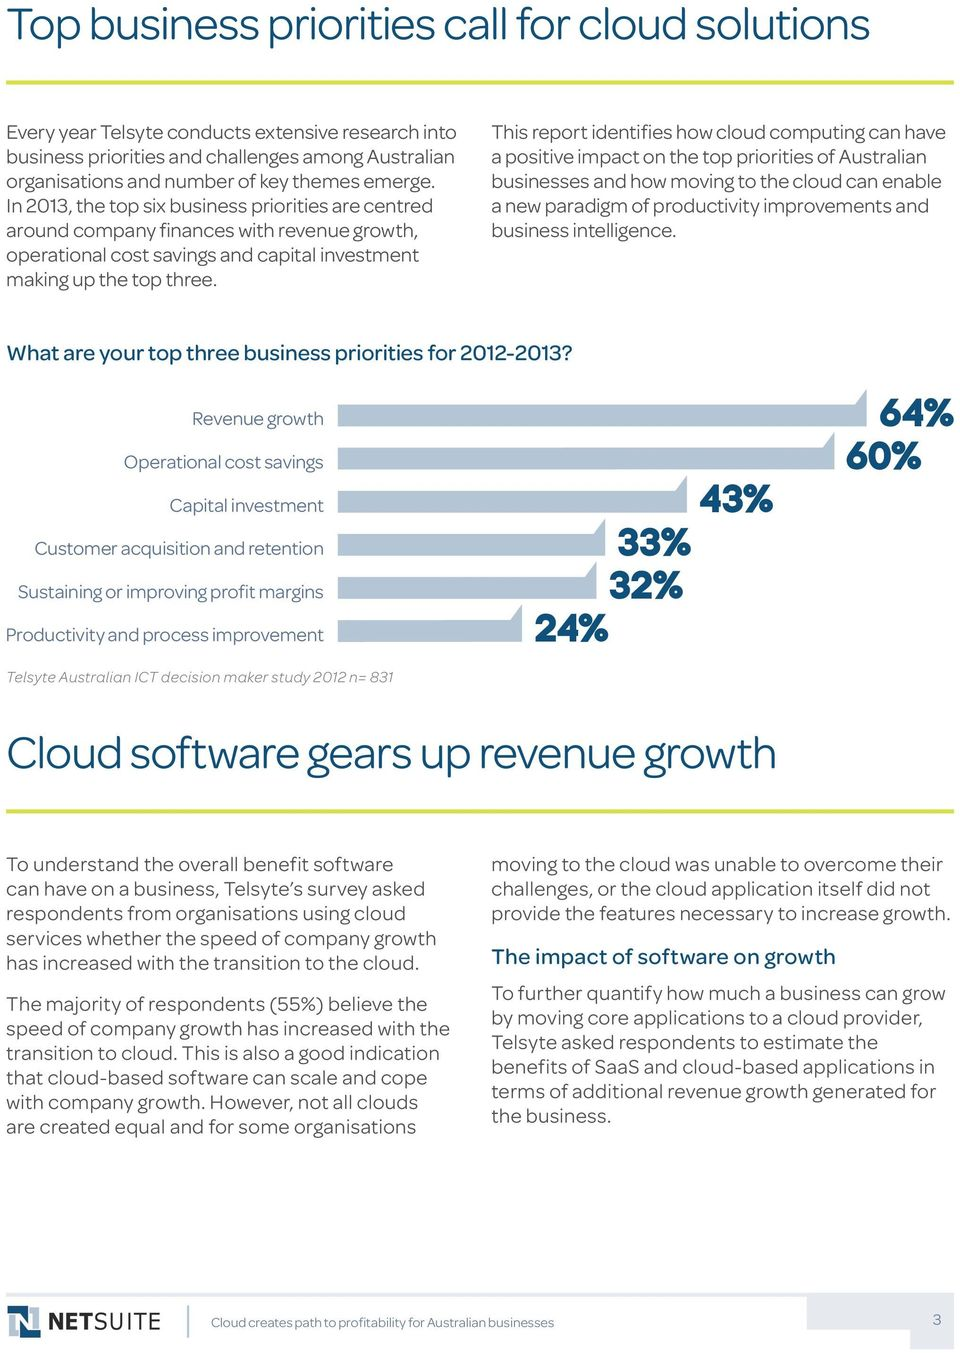 This report identifies how cloud computing can have a positive impact on the top priorities of Australian businesses and how moving to the cloud can enable a new paradigm of productivity improvements